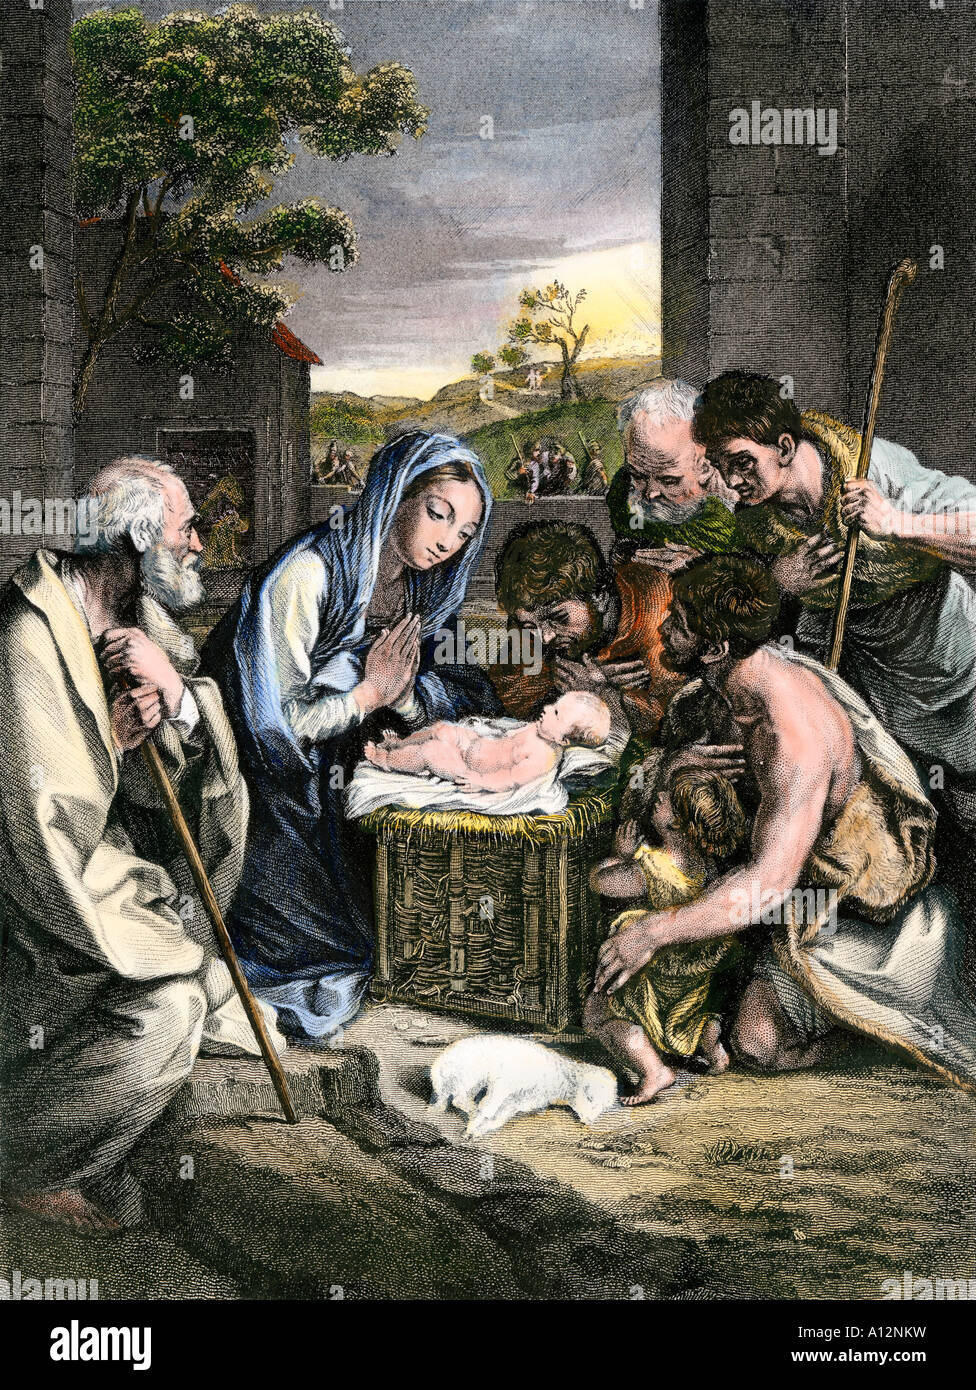 shepherds worshipping baby jesus lying in a manger in bethlehem